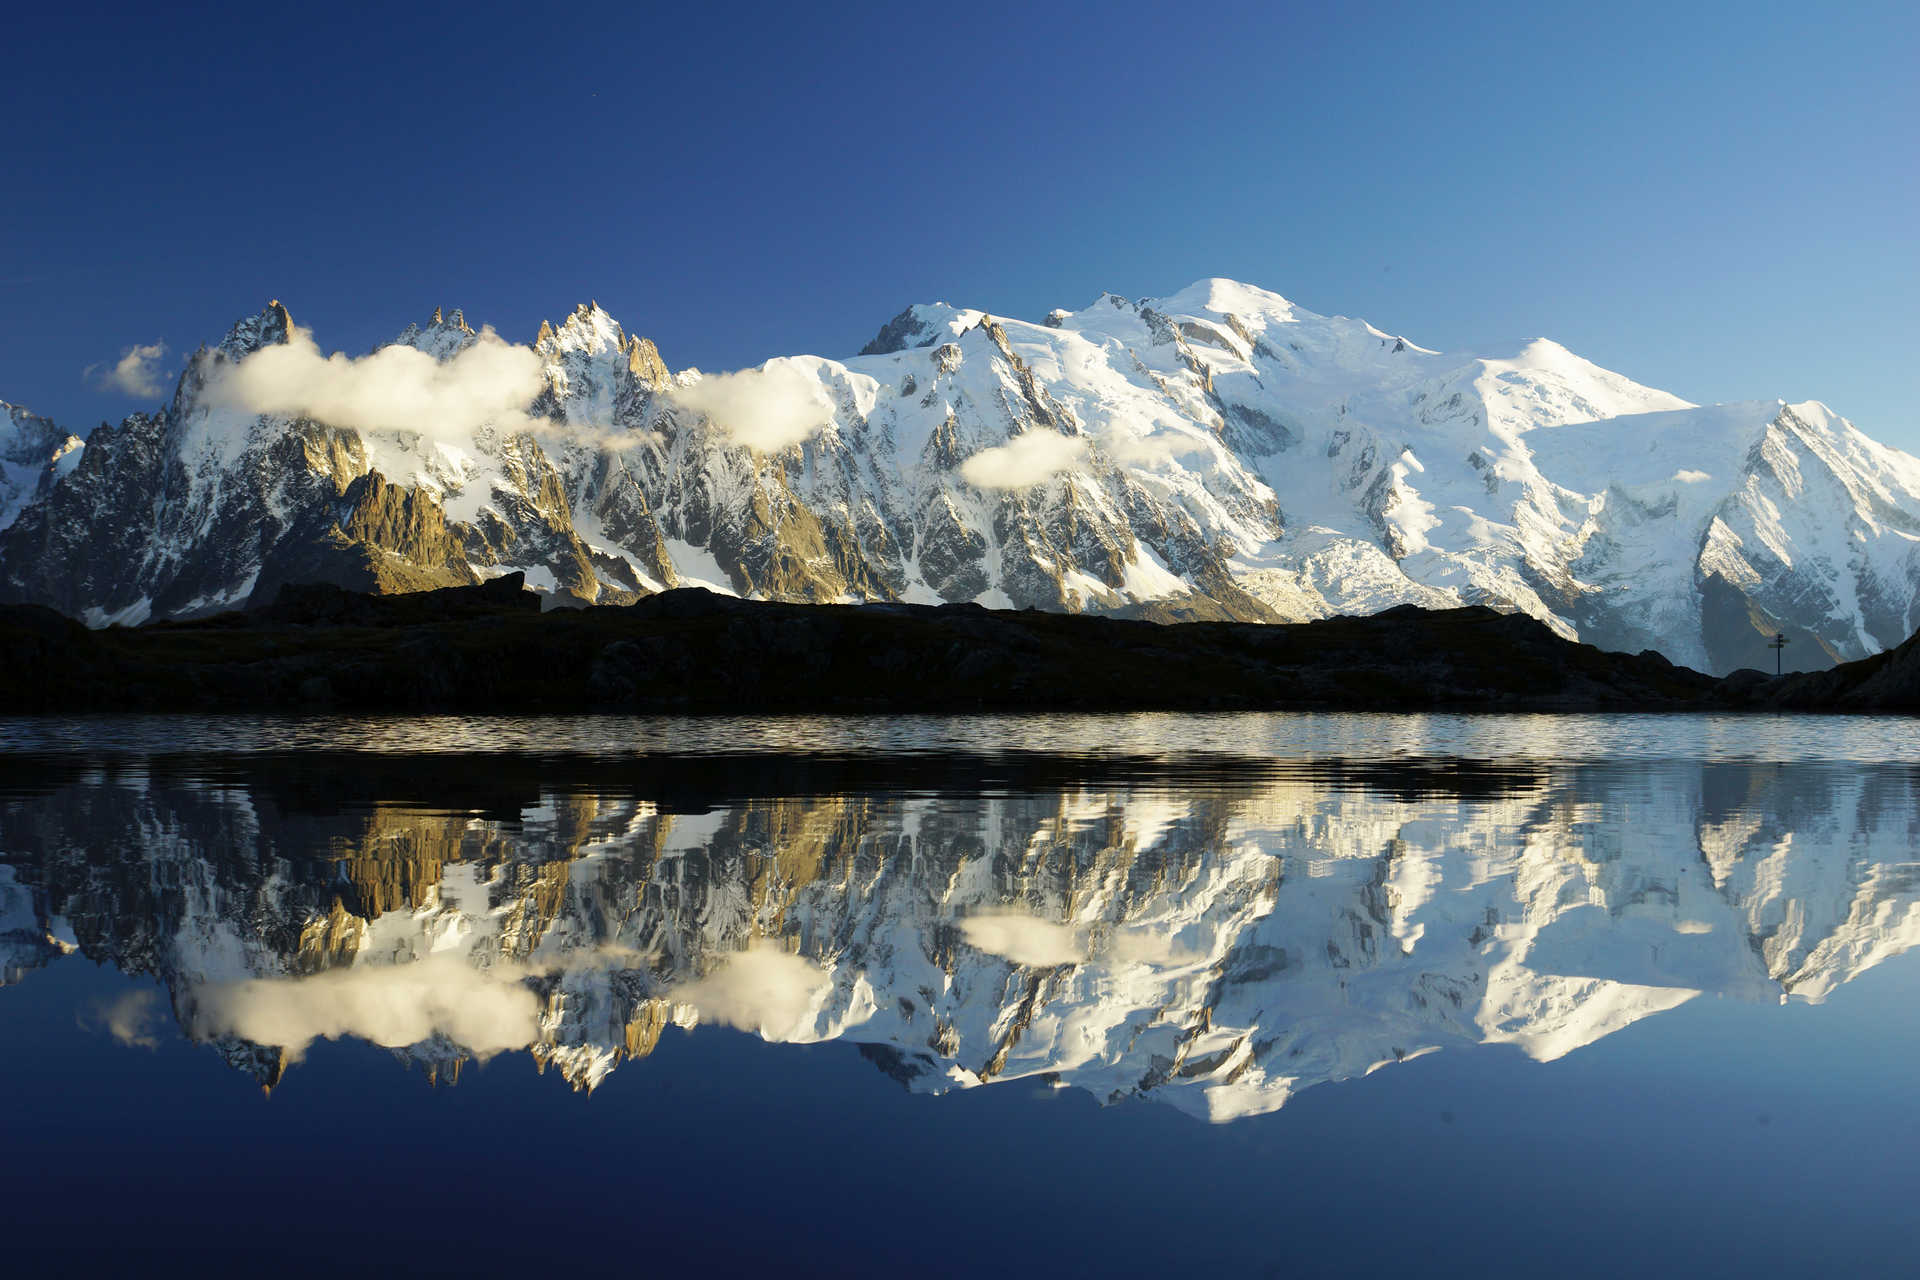 Perfect reflection on the Chésery lakes in front of the Mont Blanc massif